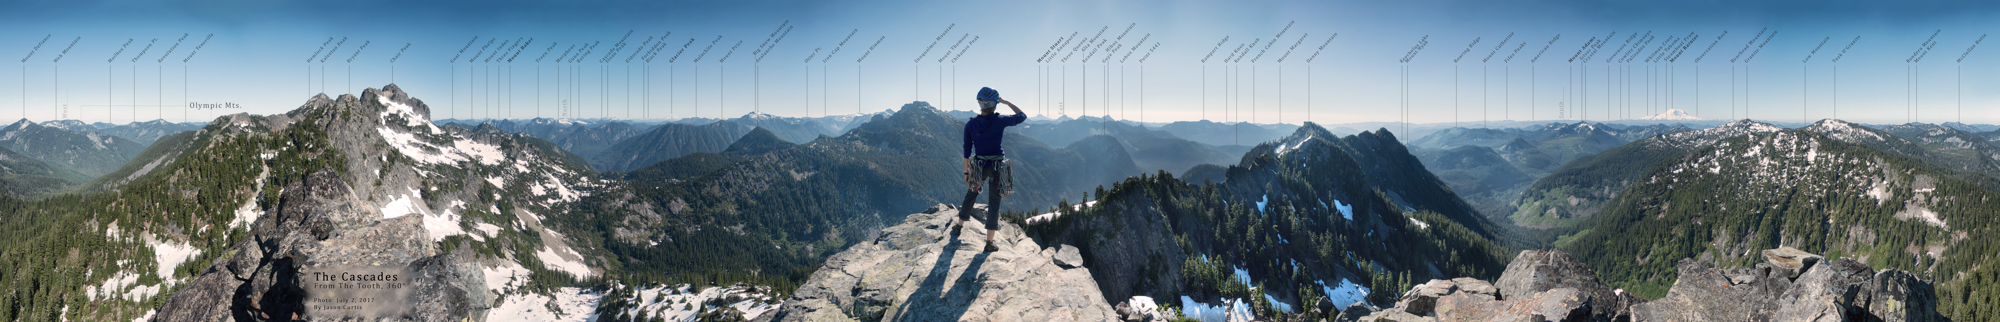 Pacific northwest - Panoramas & Photography